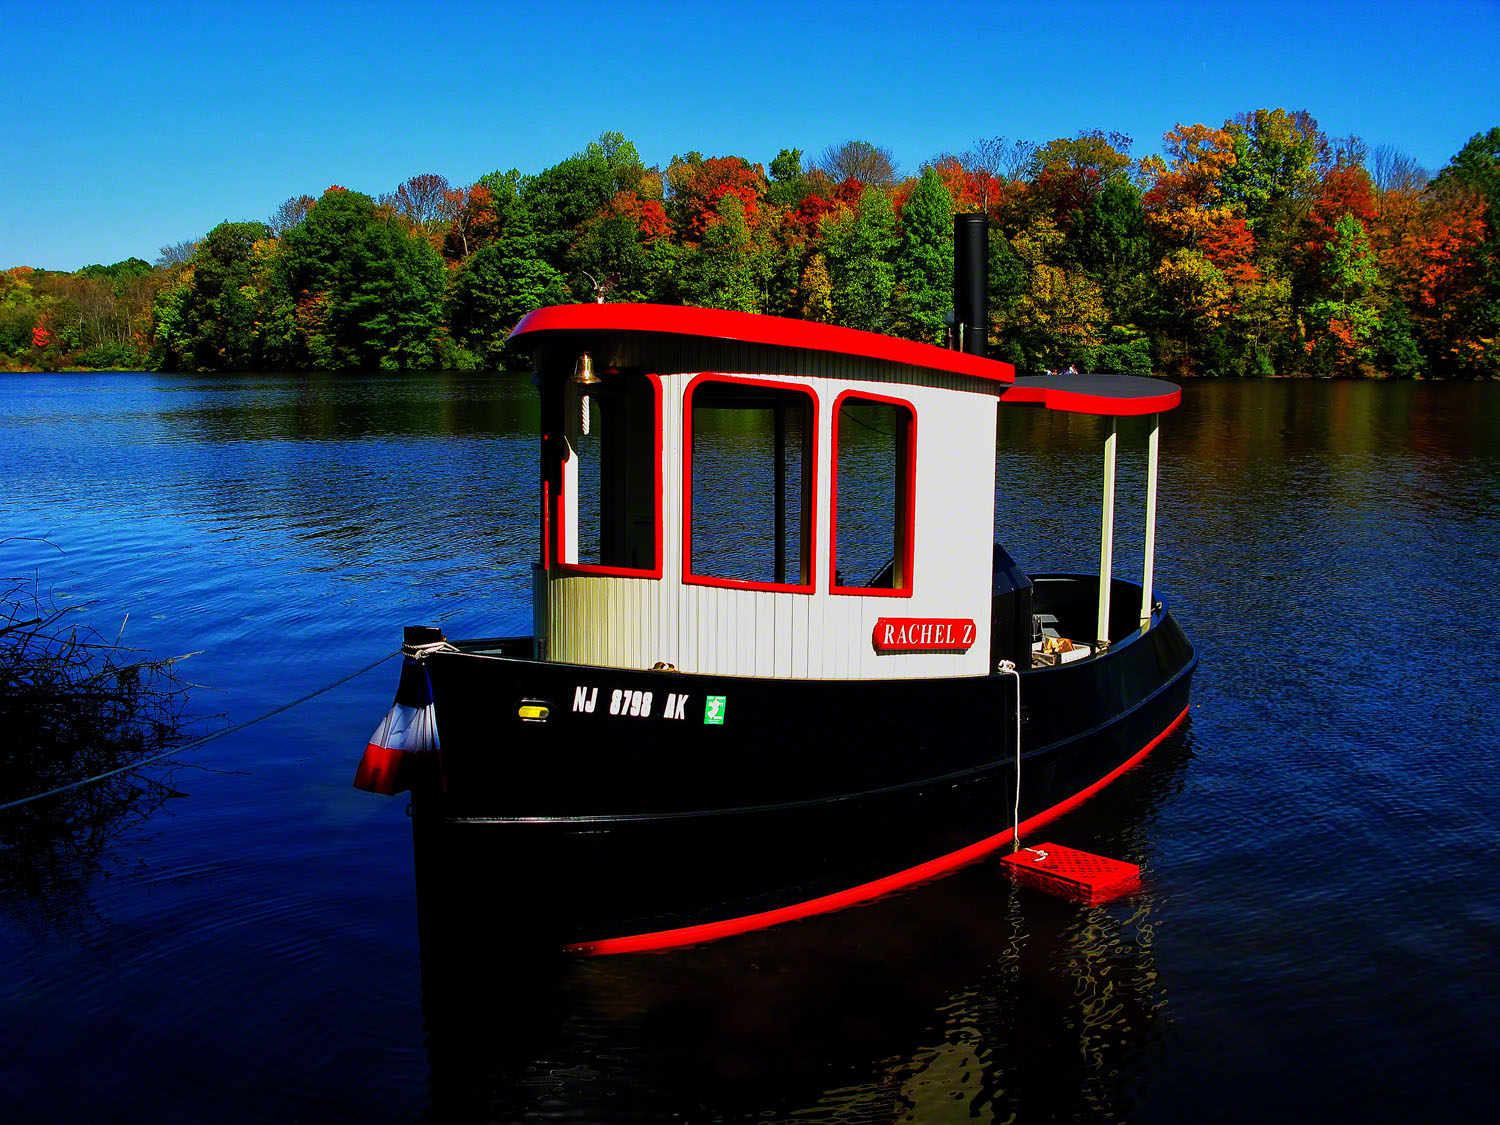 The Rachel Z remained silent at its mooring waiting for her captain to fire up the steam engine.